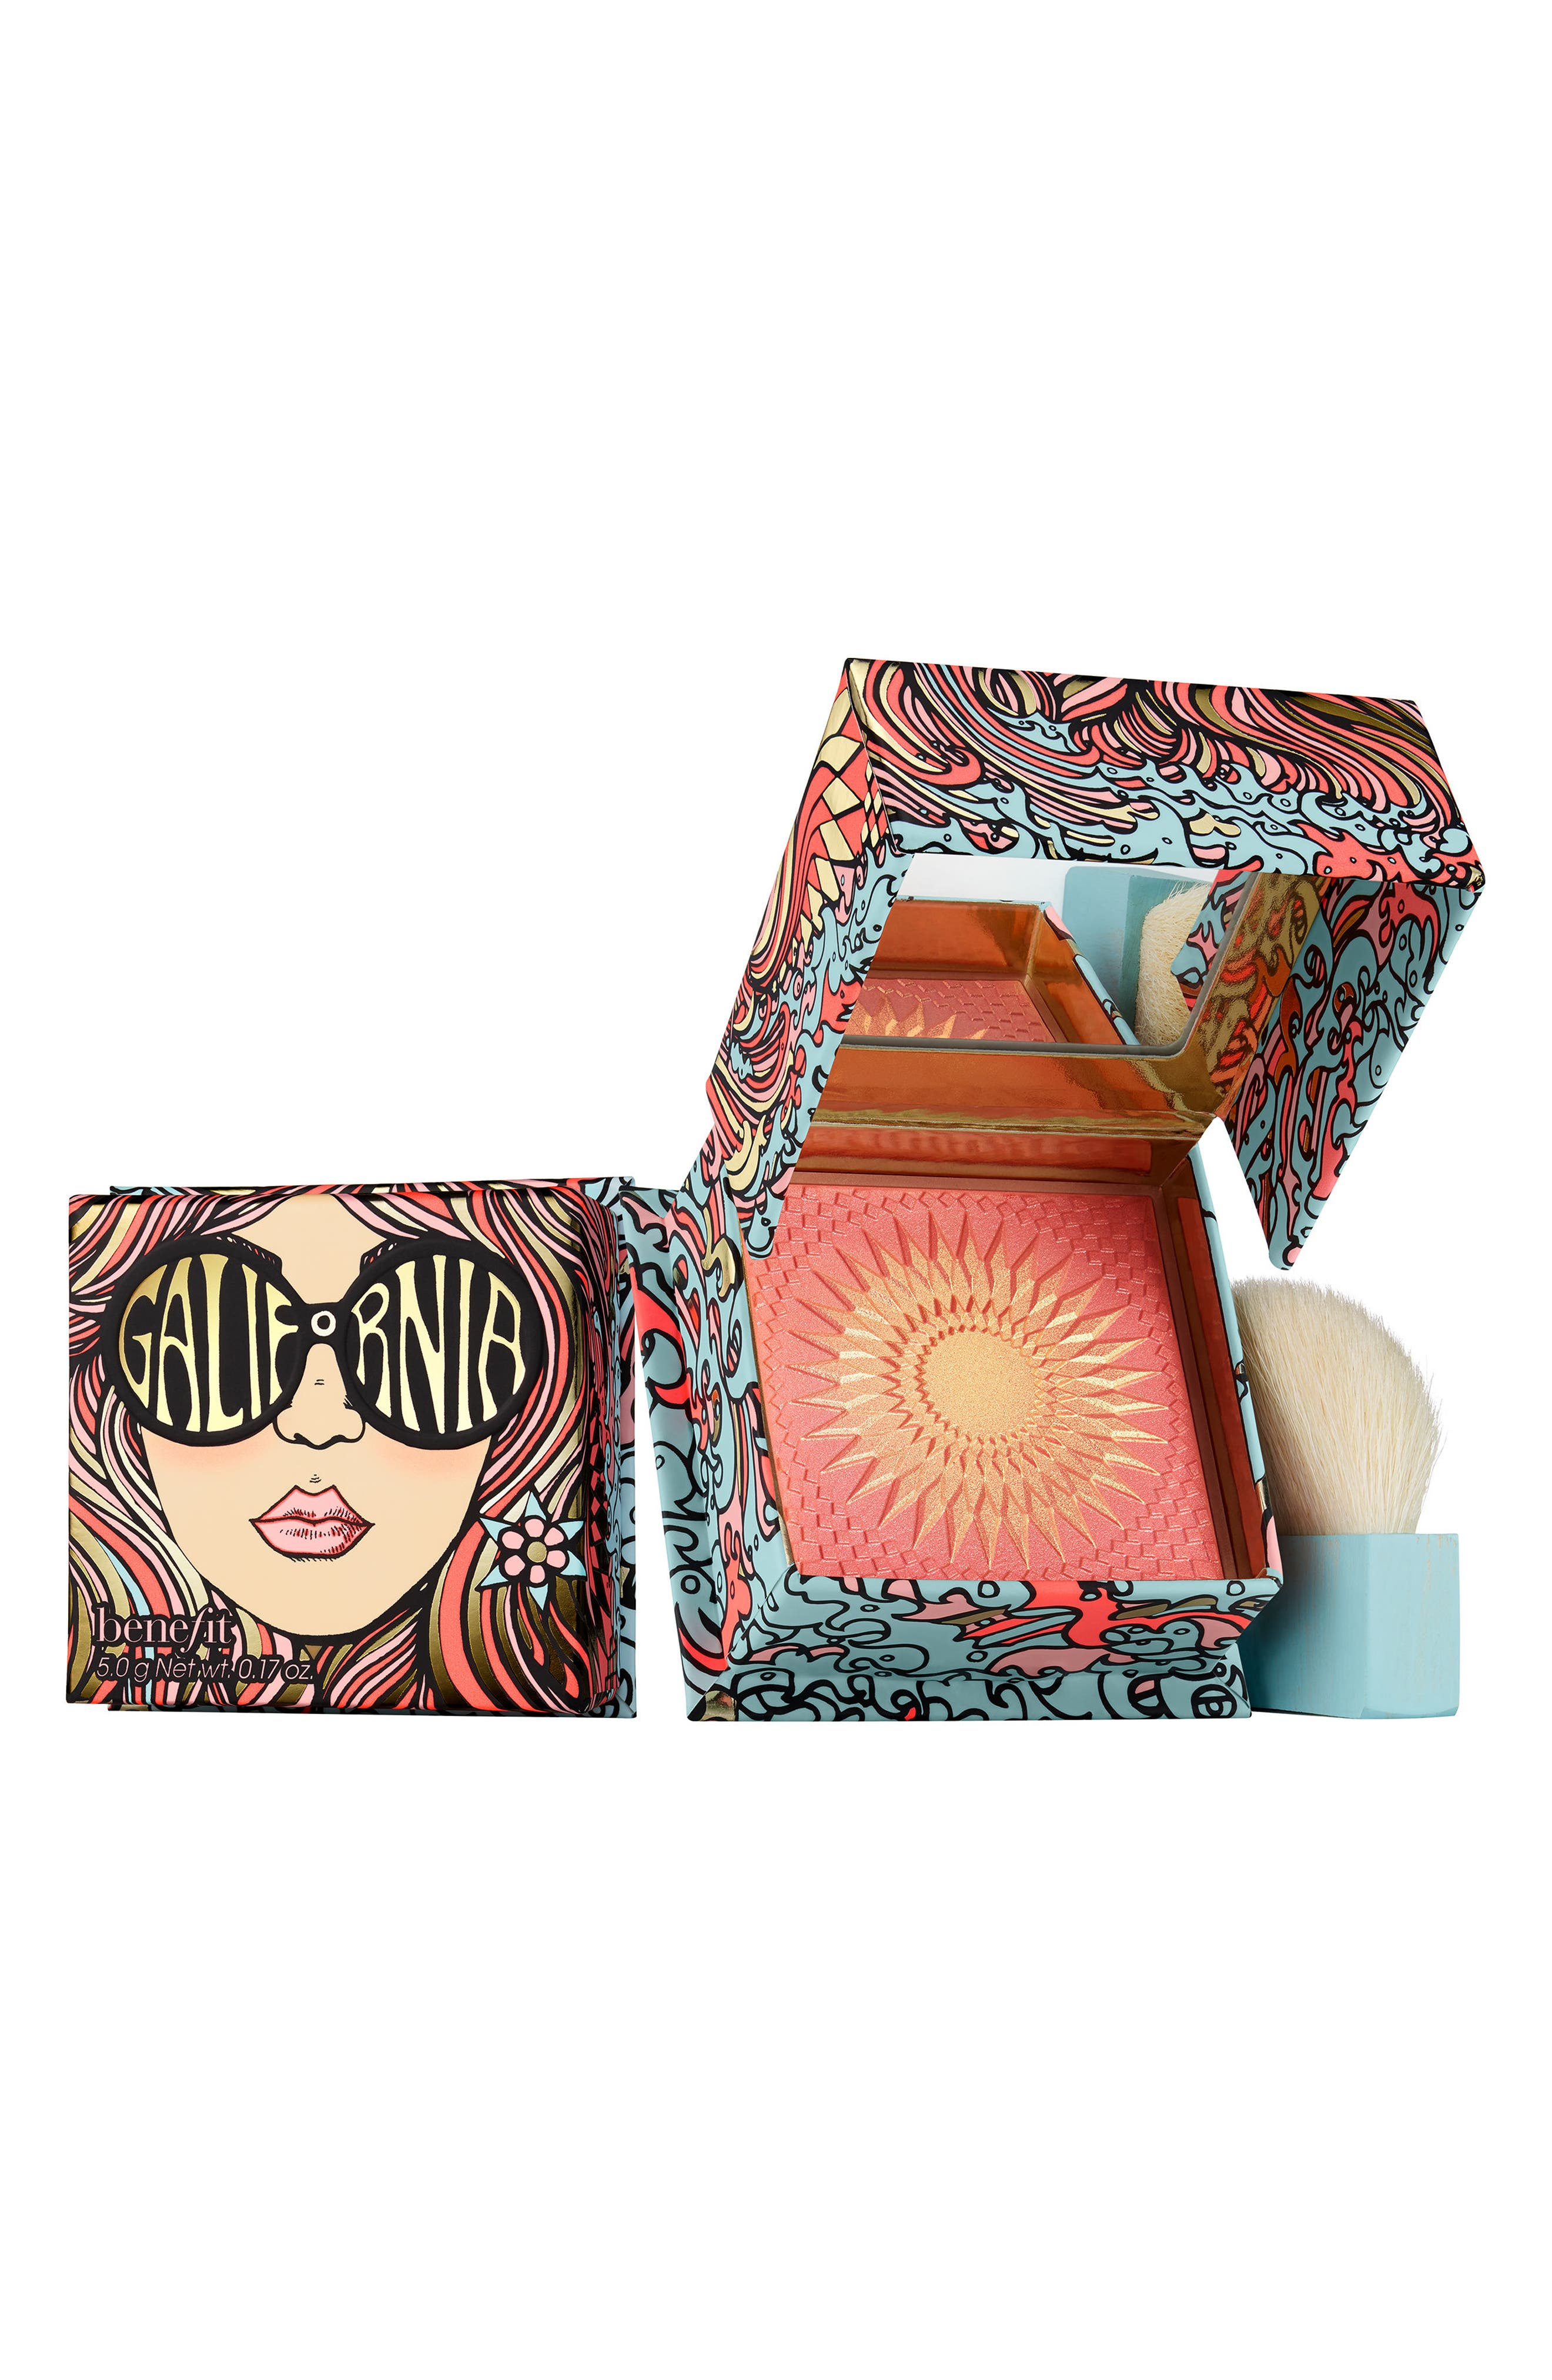 Benefit GALifornia Sunny Golden Pink Powder Blush,                         Main,                         color, SUNNY GOLDEN PINK